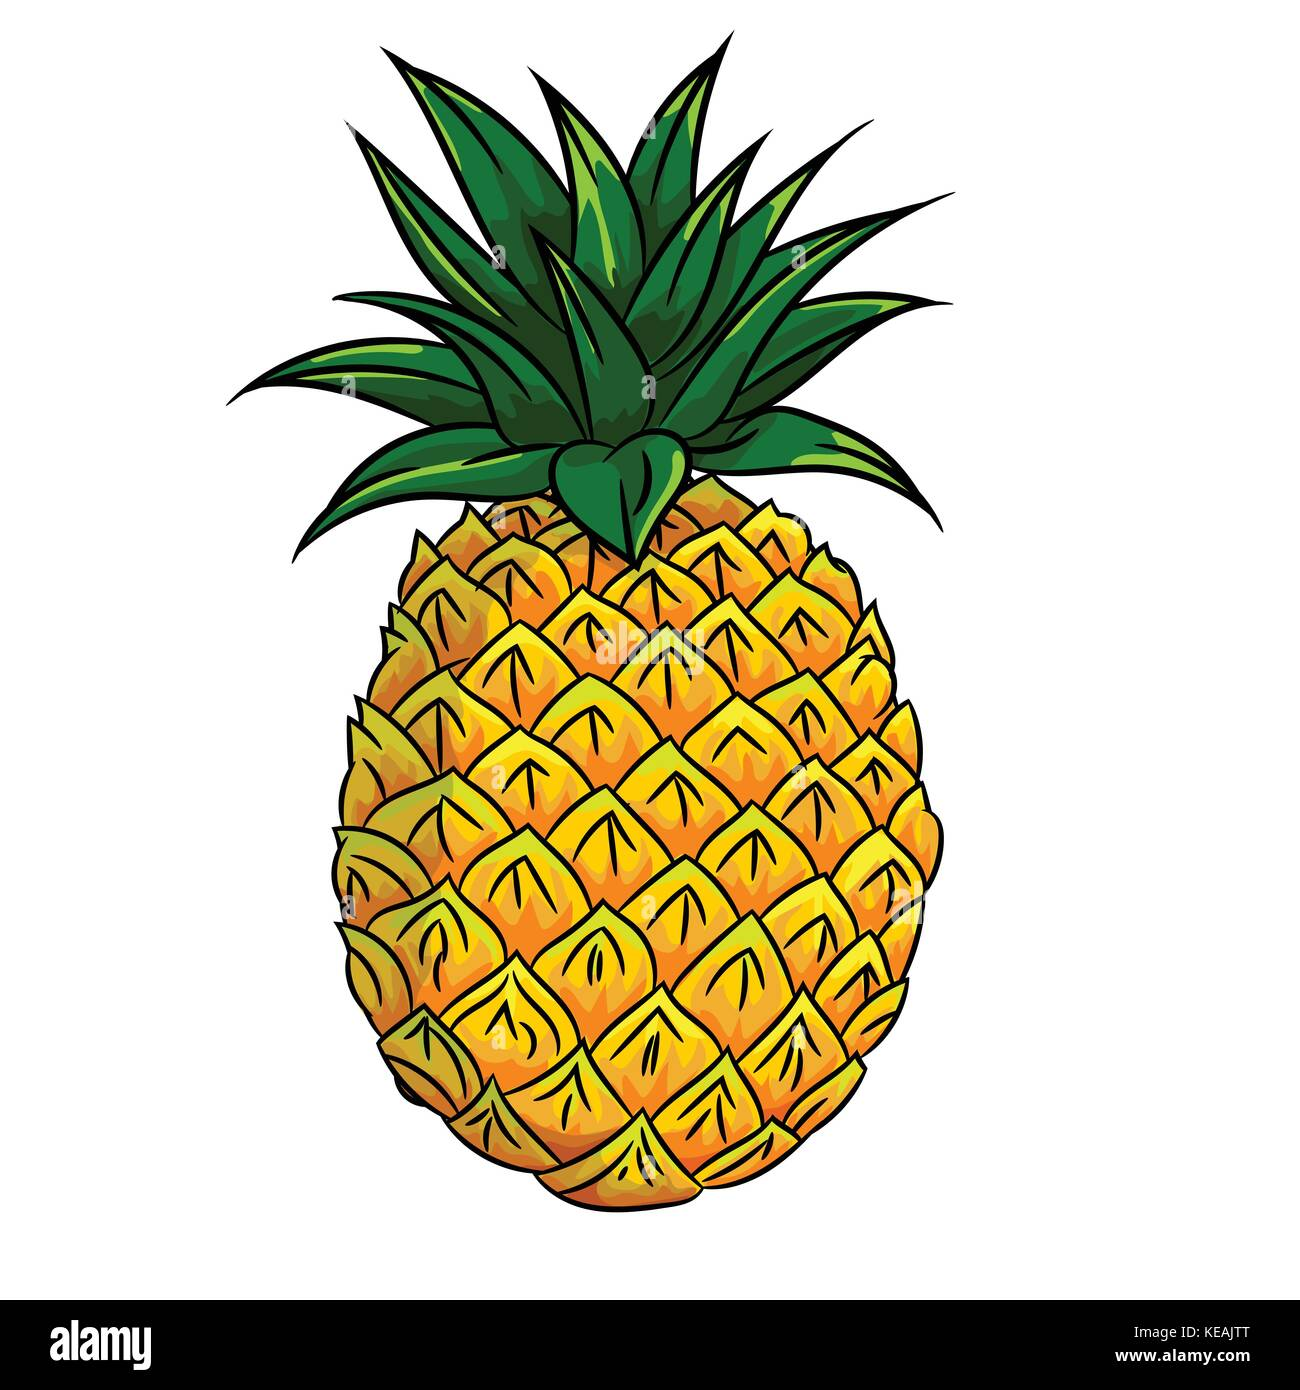 Coloring book kea - Hand Drawn Sketch Of Pineapple Isolated Black And White Cartoon Vector Illustration For Coloring Book